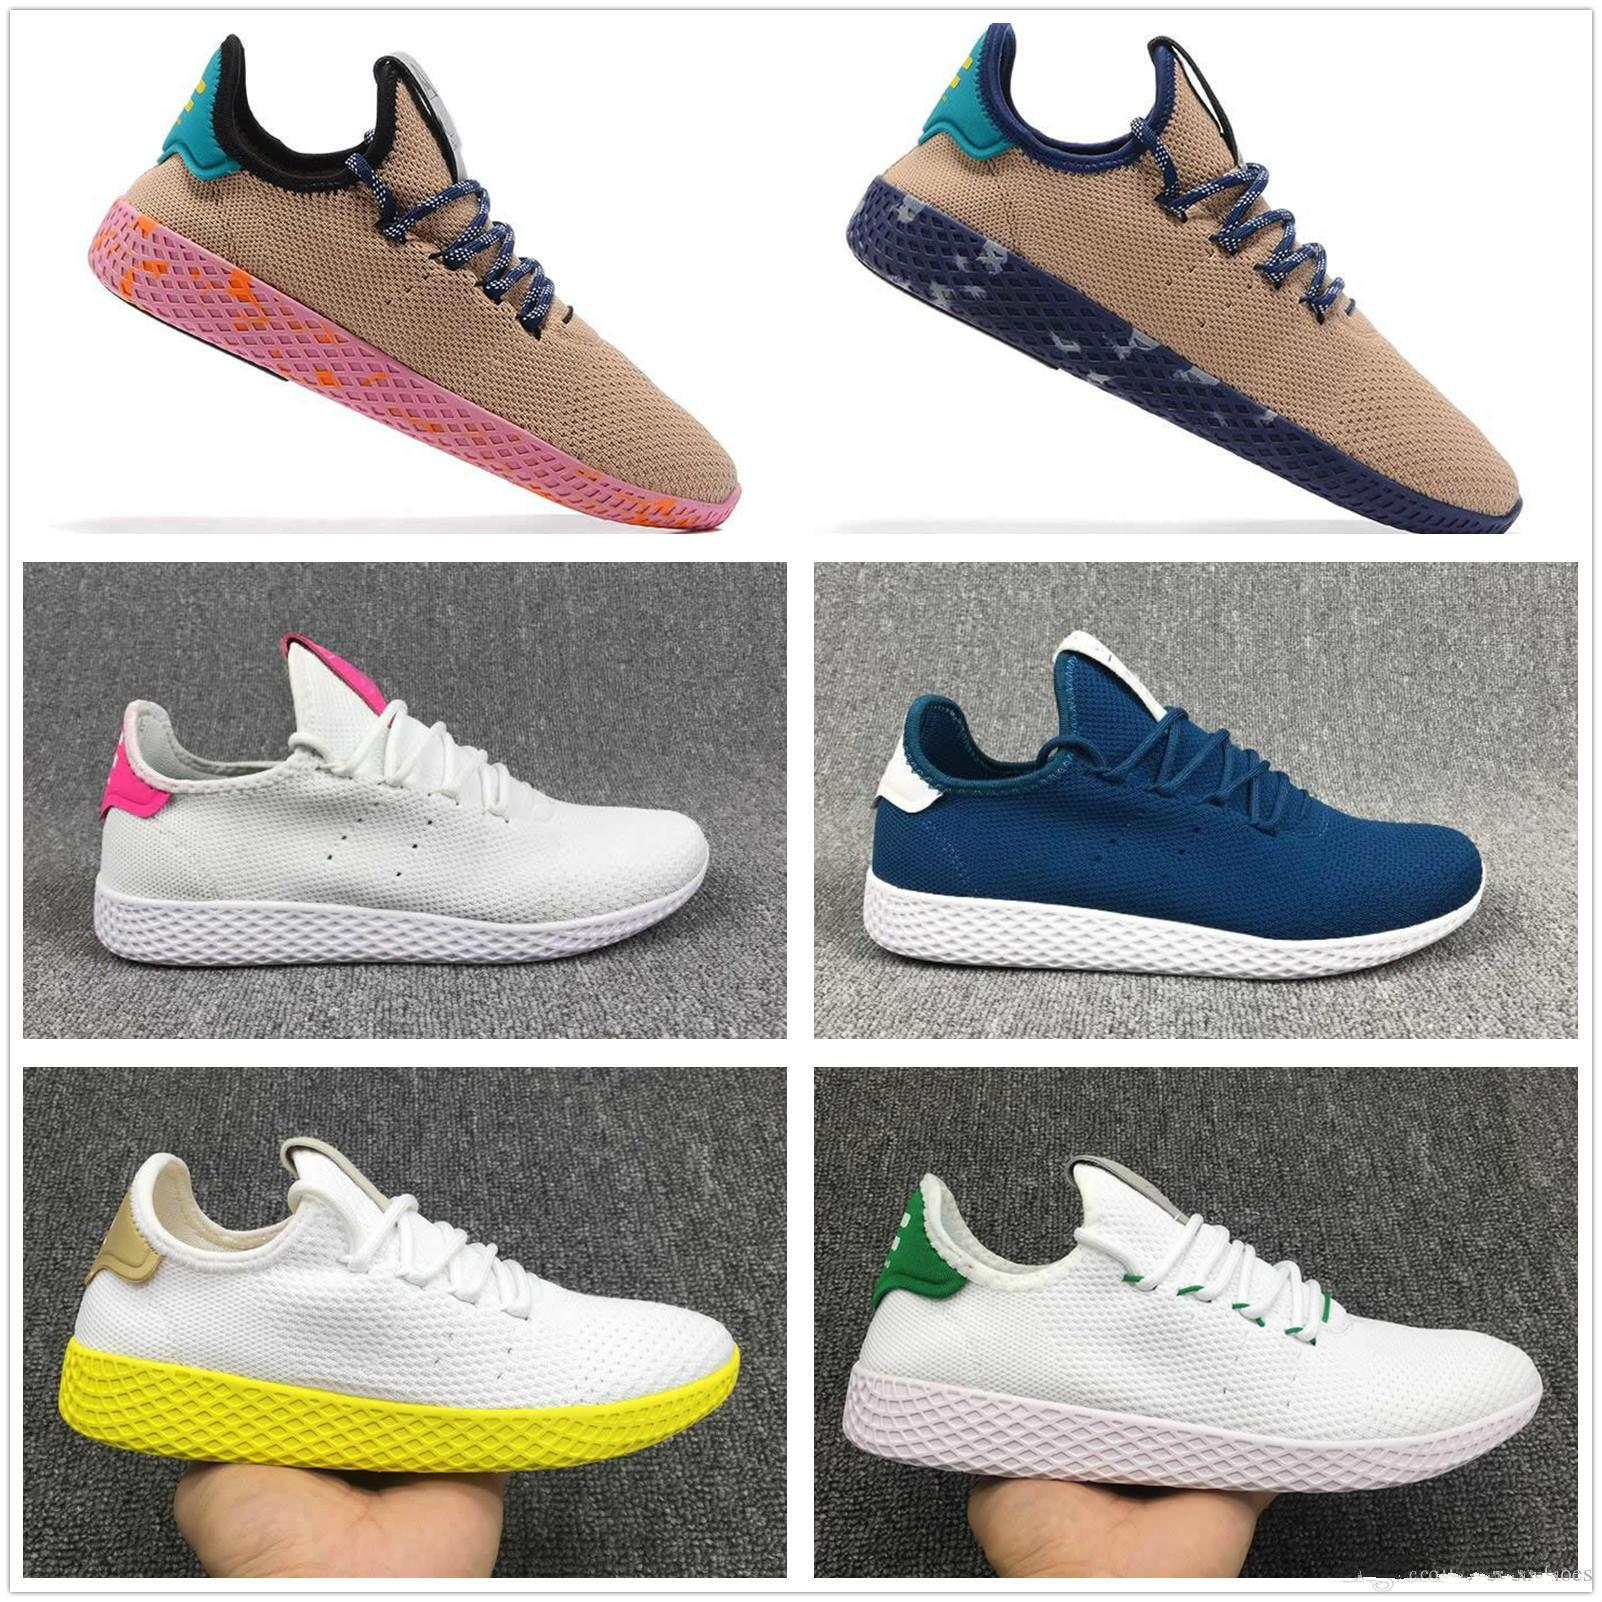 on sale 35731 d02f7 2018 New Arrive Pharrell Williams X Stan Smith Tennis HU Primeknit Men  Women Shoes Breathable Boost Shoes EUR 36 45 Sport Shoes Skechers Shoes  From ...